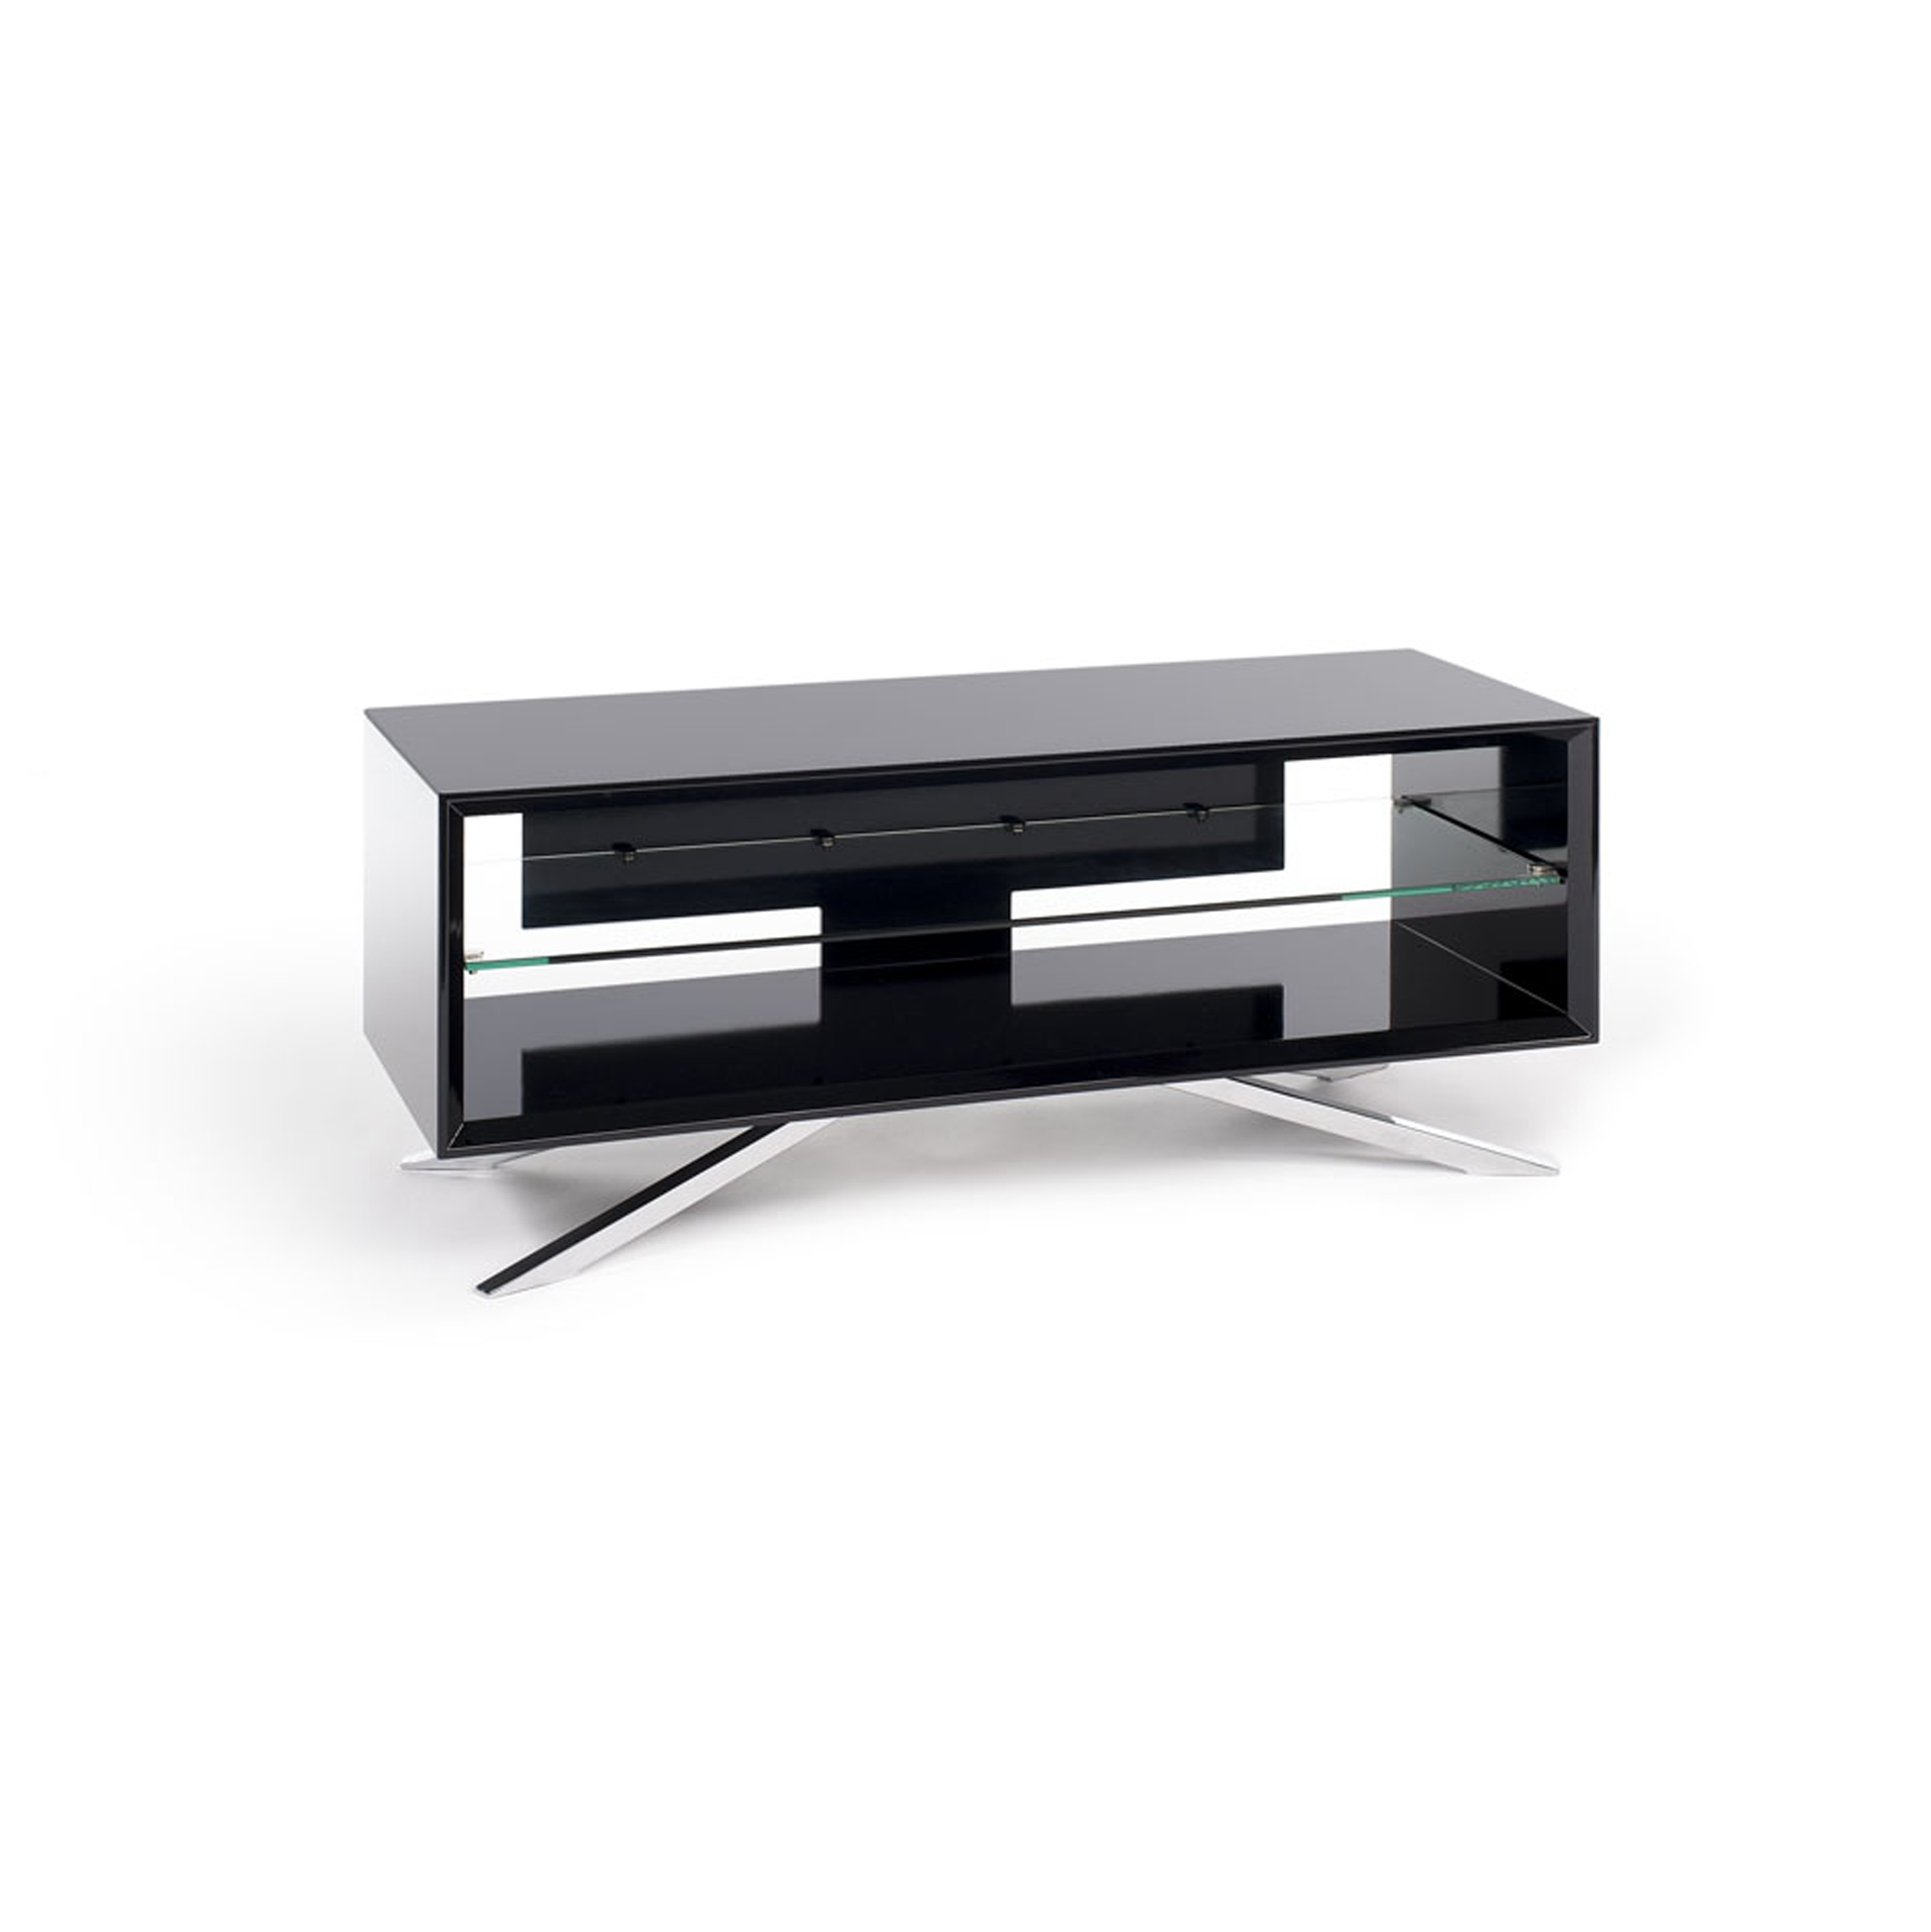 Techlink – Black Tv Stands In Best And Newest Techlink Air Tv Stands (Image 16 of 25)